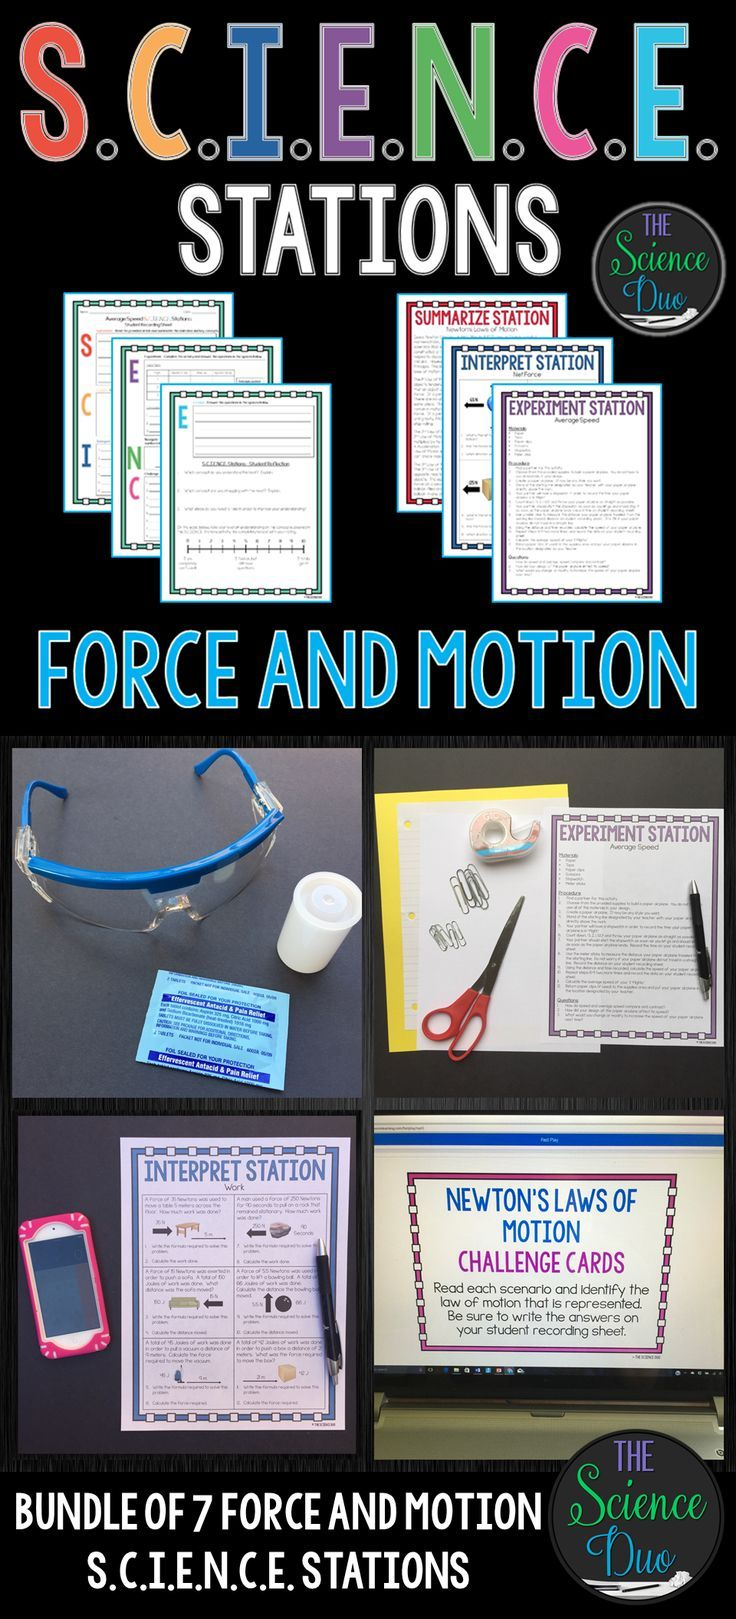 This Force and Motion S.C.I.E.N.C.E. Stations Bundle is designed to get your students engaged, collaborating, and moving in your daily lesson. This bundle includes 7 different Force and Motion S.C.I.E.N.C.E. Station activities.